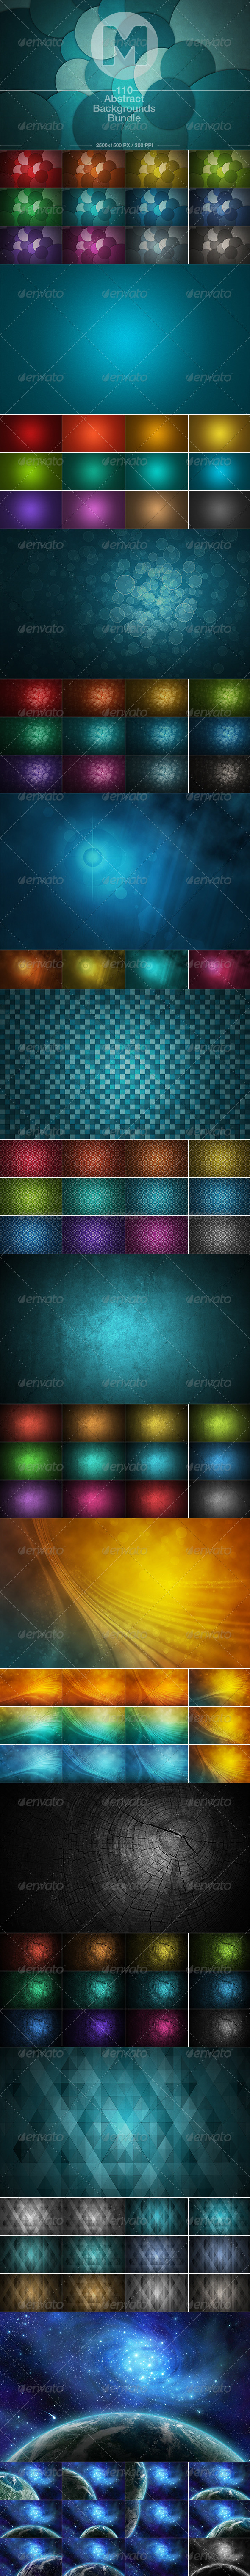 110 Abstract Backgrounds Bundle